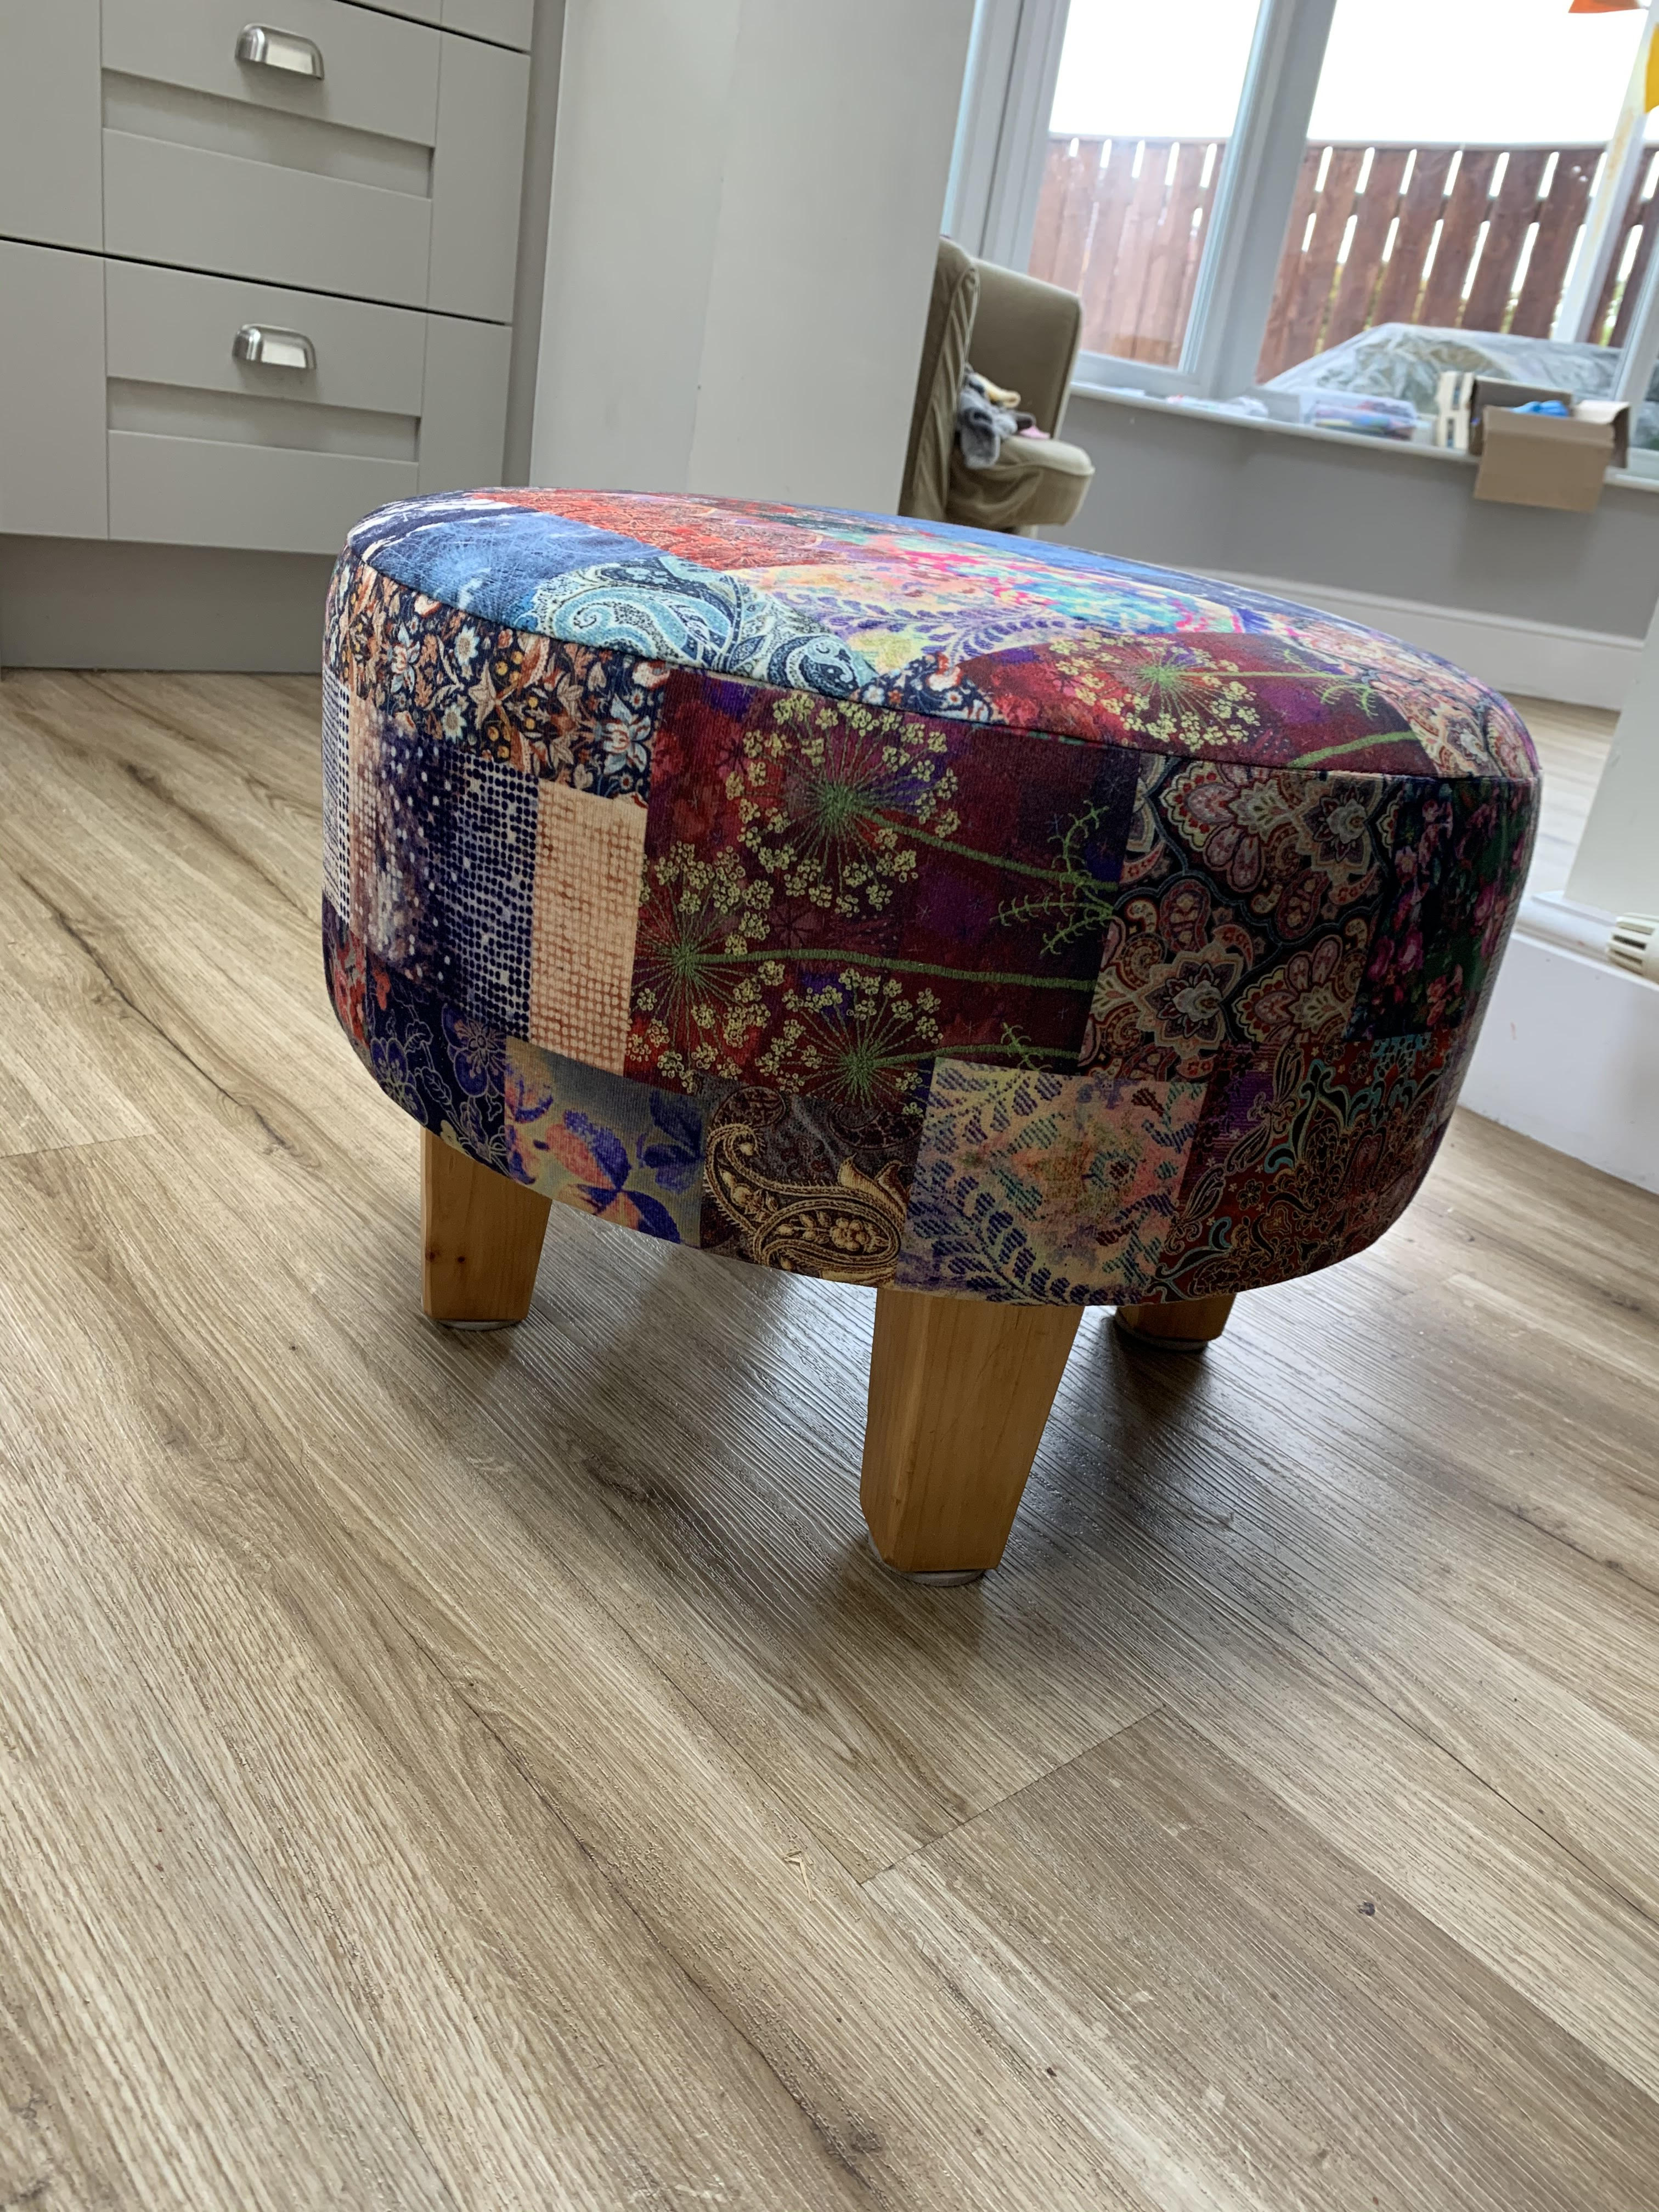 Donna Louise Footstool Upholstered In Yorkshire Fabric Shops CTR-66 Freedom Patchwork Velvet Material